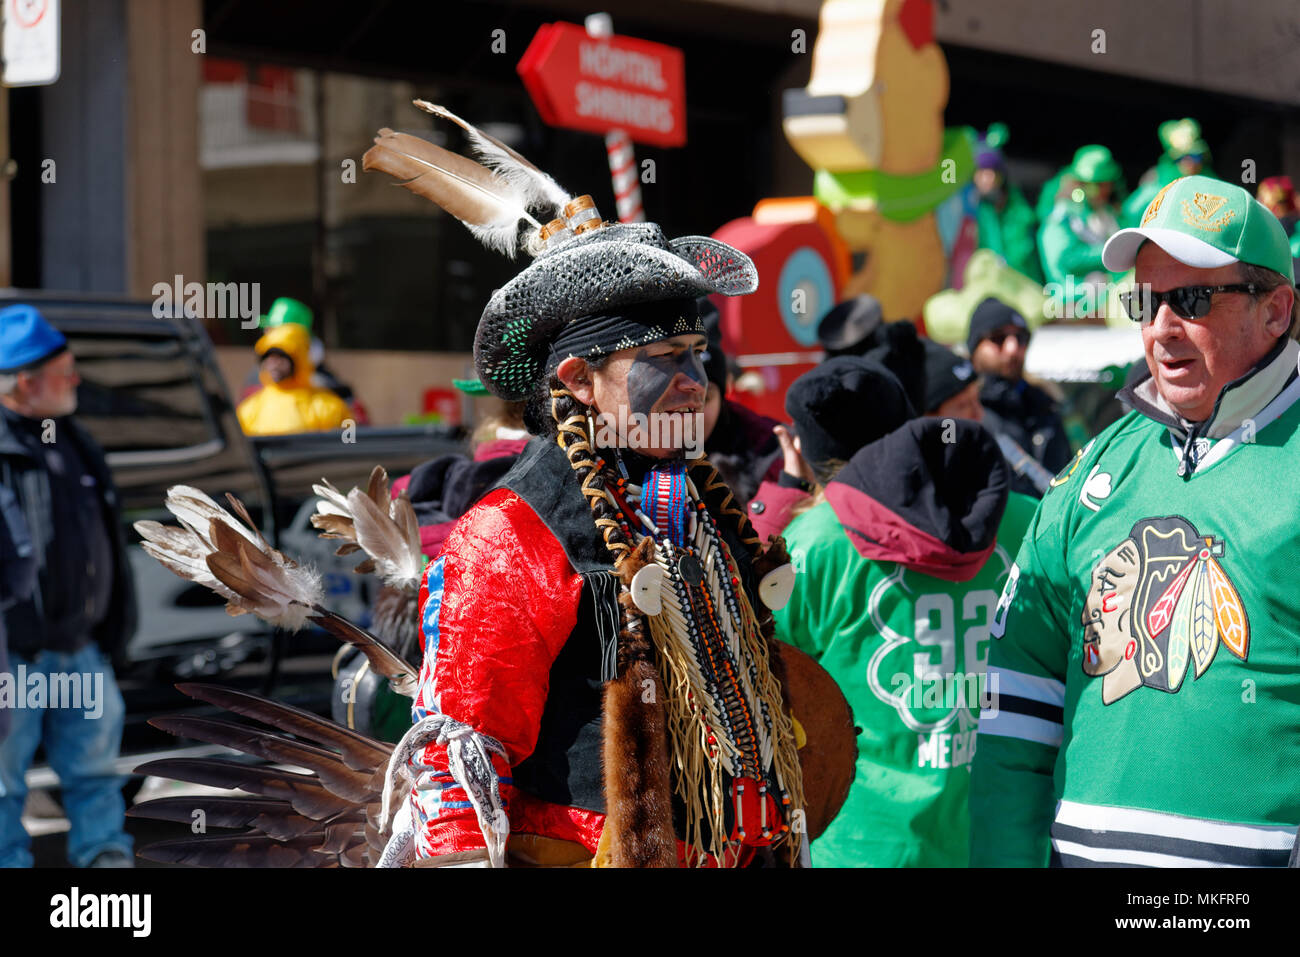 An Amerindian in full Mohawk costume at Montreal St Patrick's Day Parade - Stock Image